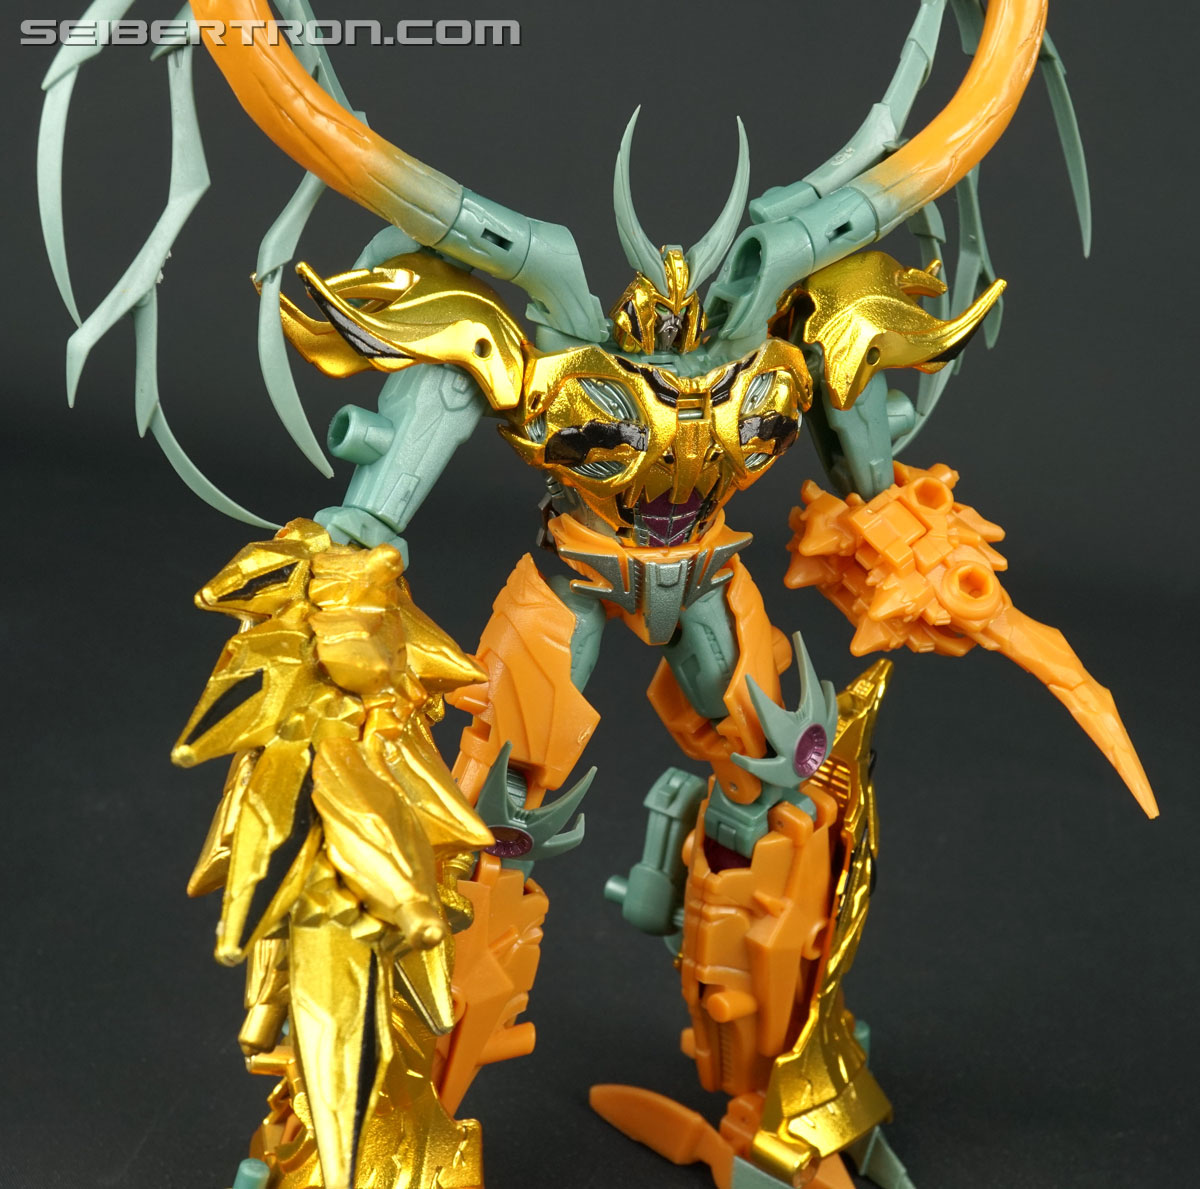 Transformers Arms Micron Gaia Unicron (Image #149 of 201)